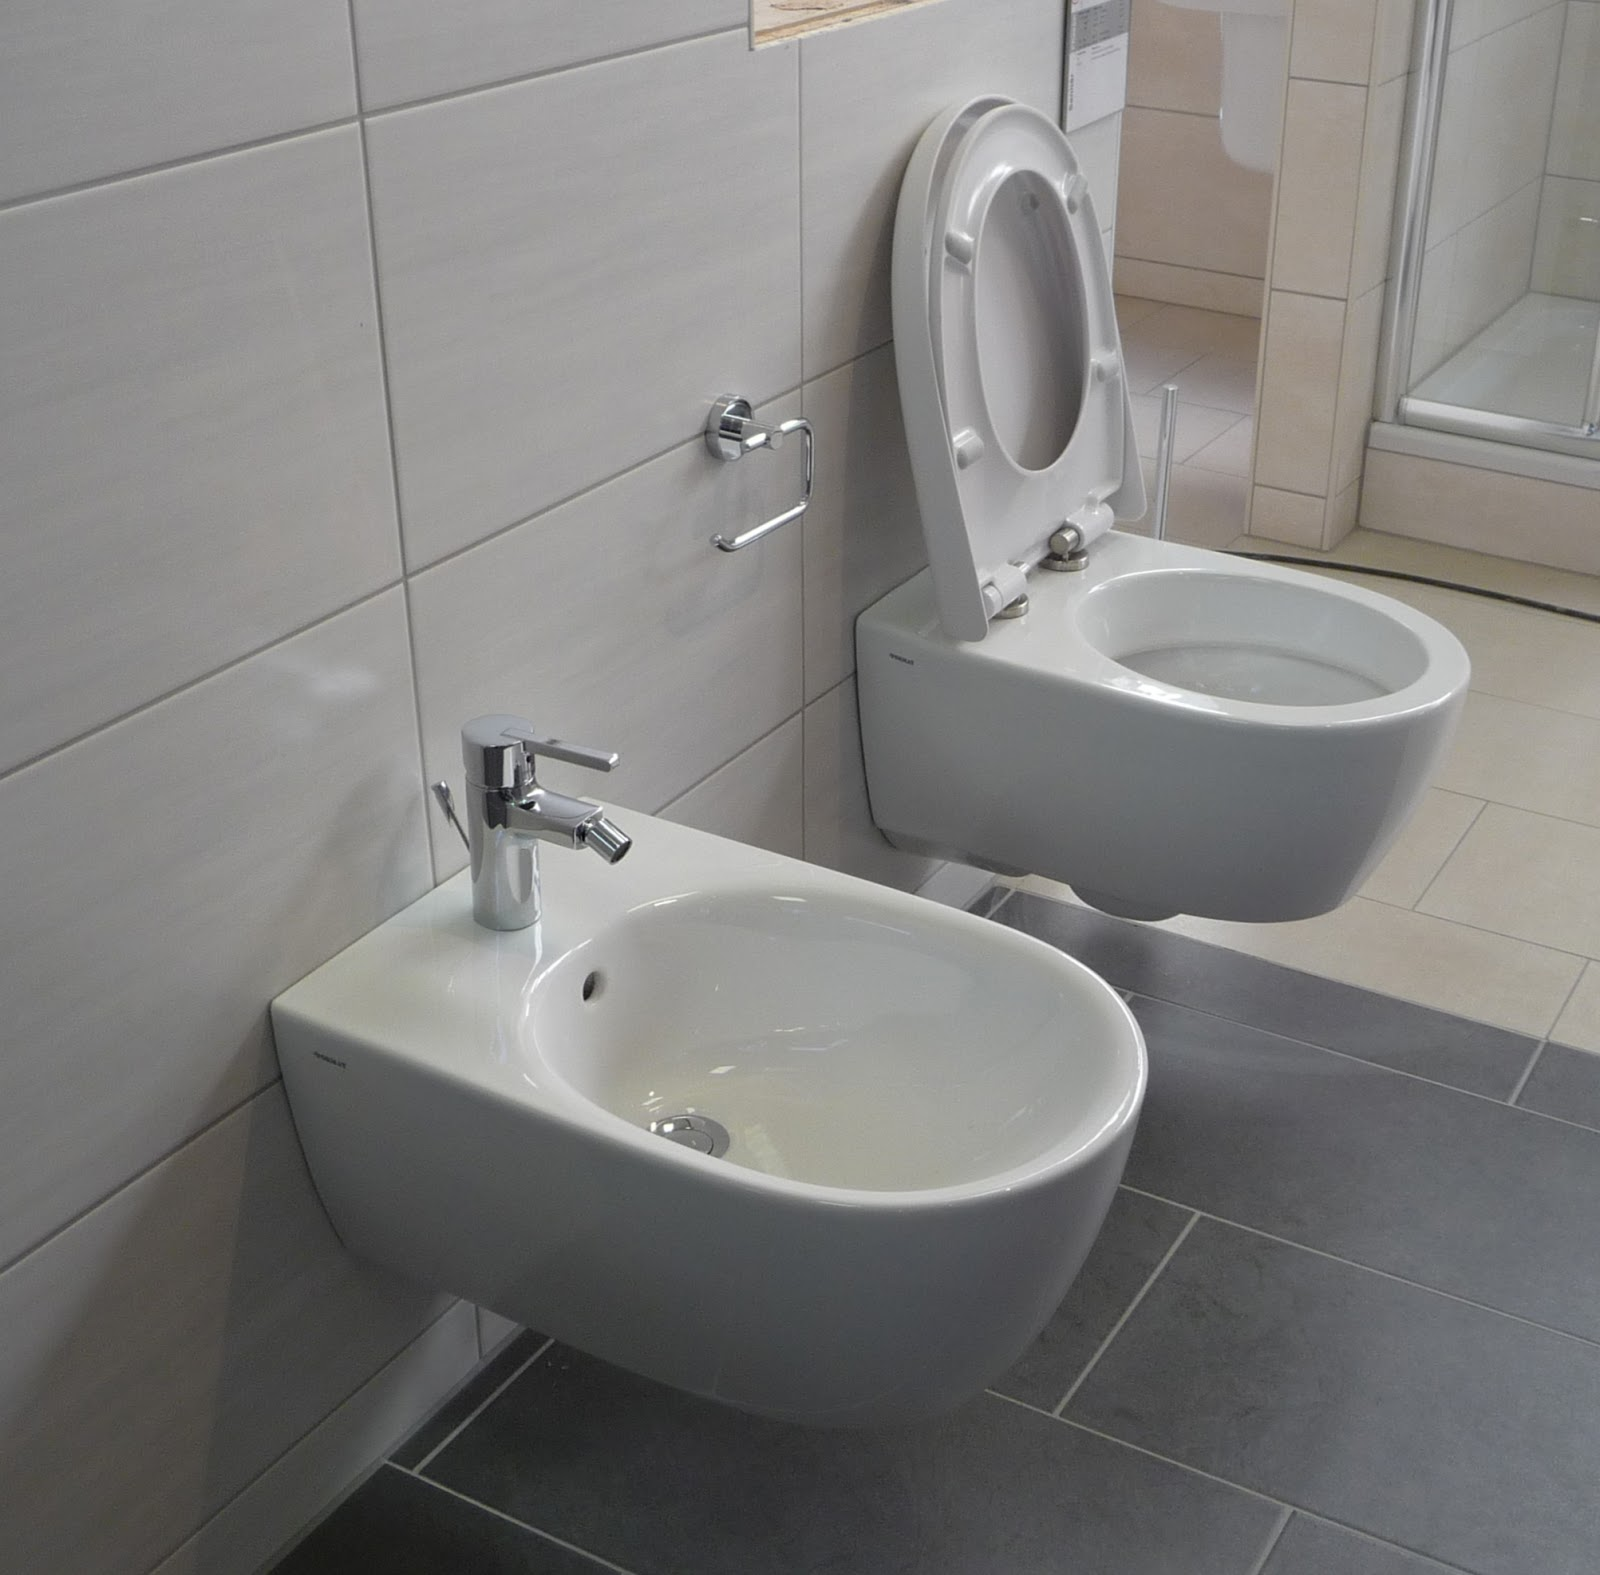 40 f r die wc sitze mit absenk automatik hier die bilder bidet und wc. Black Bedroom Furniture Sets. Home Design Ideas